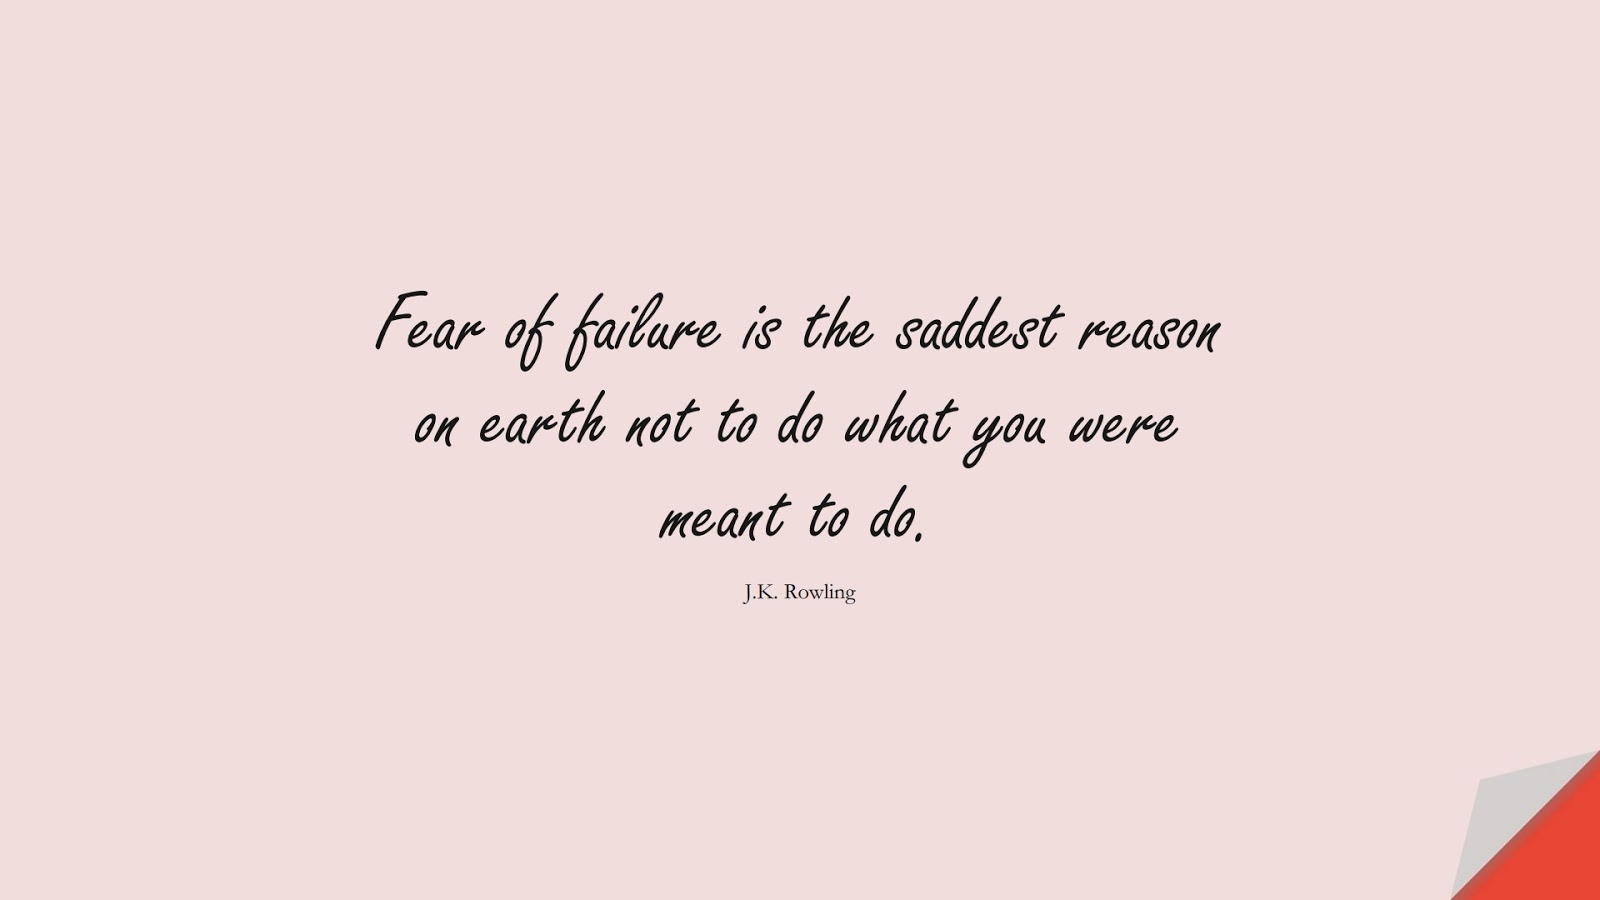 Fear of failure is the saddest reason on earth not to do what you were meant to do. (J.K. Rowling);  #CourageQuotes